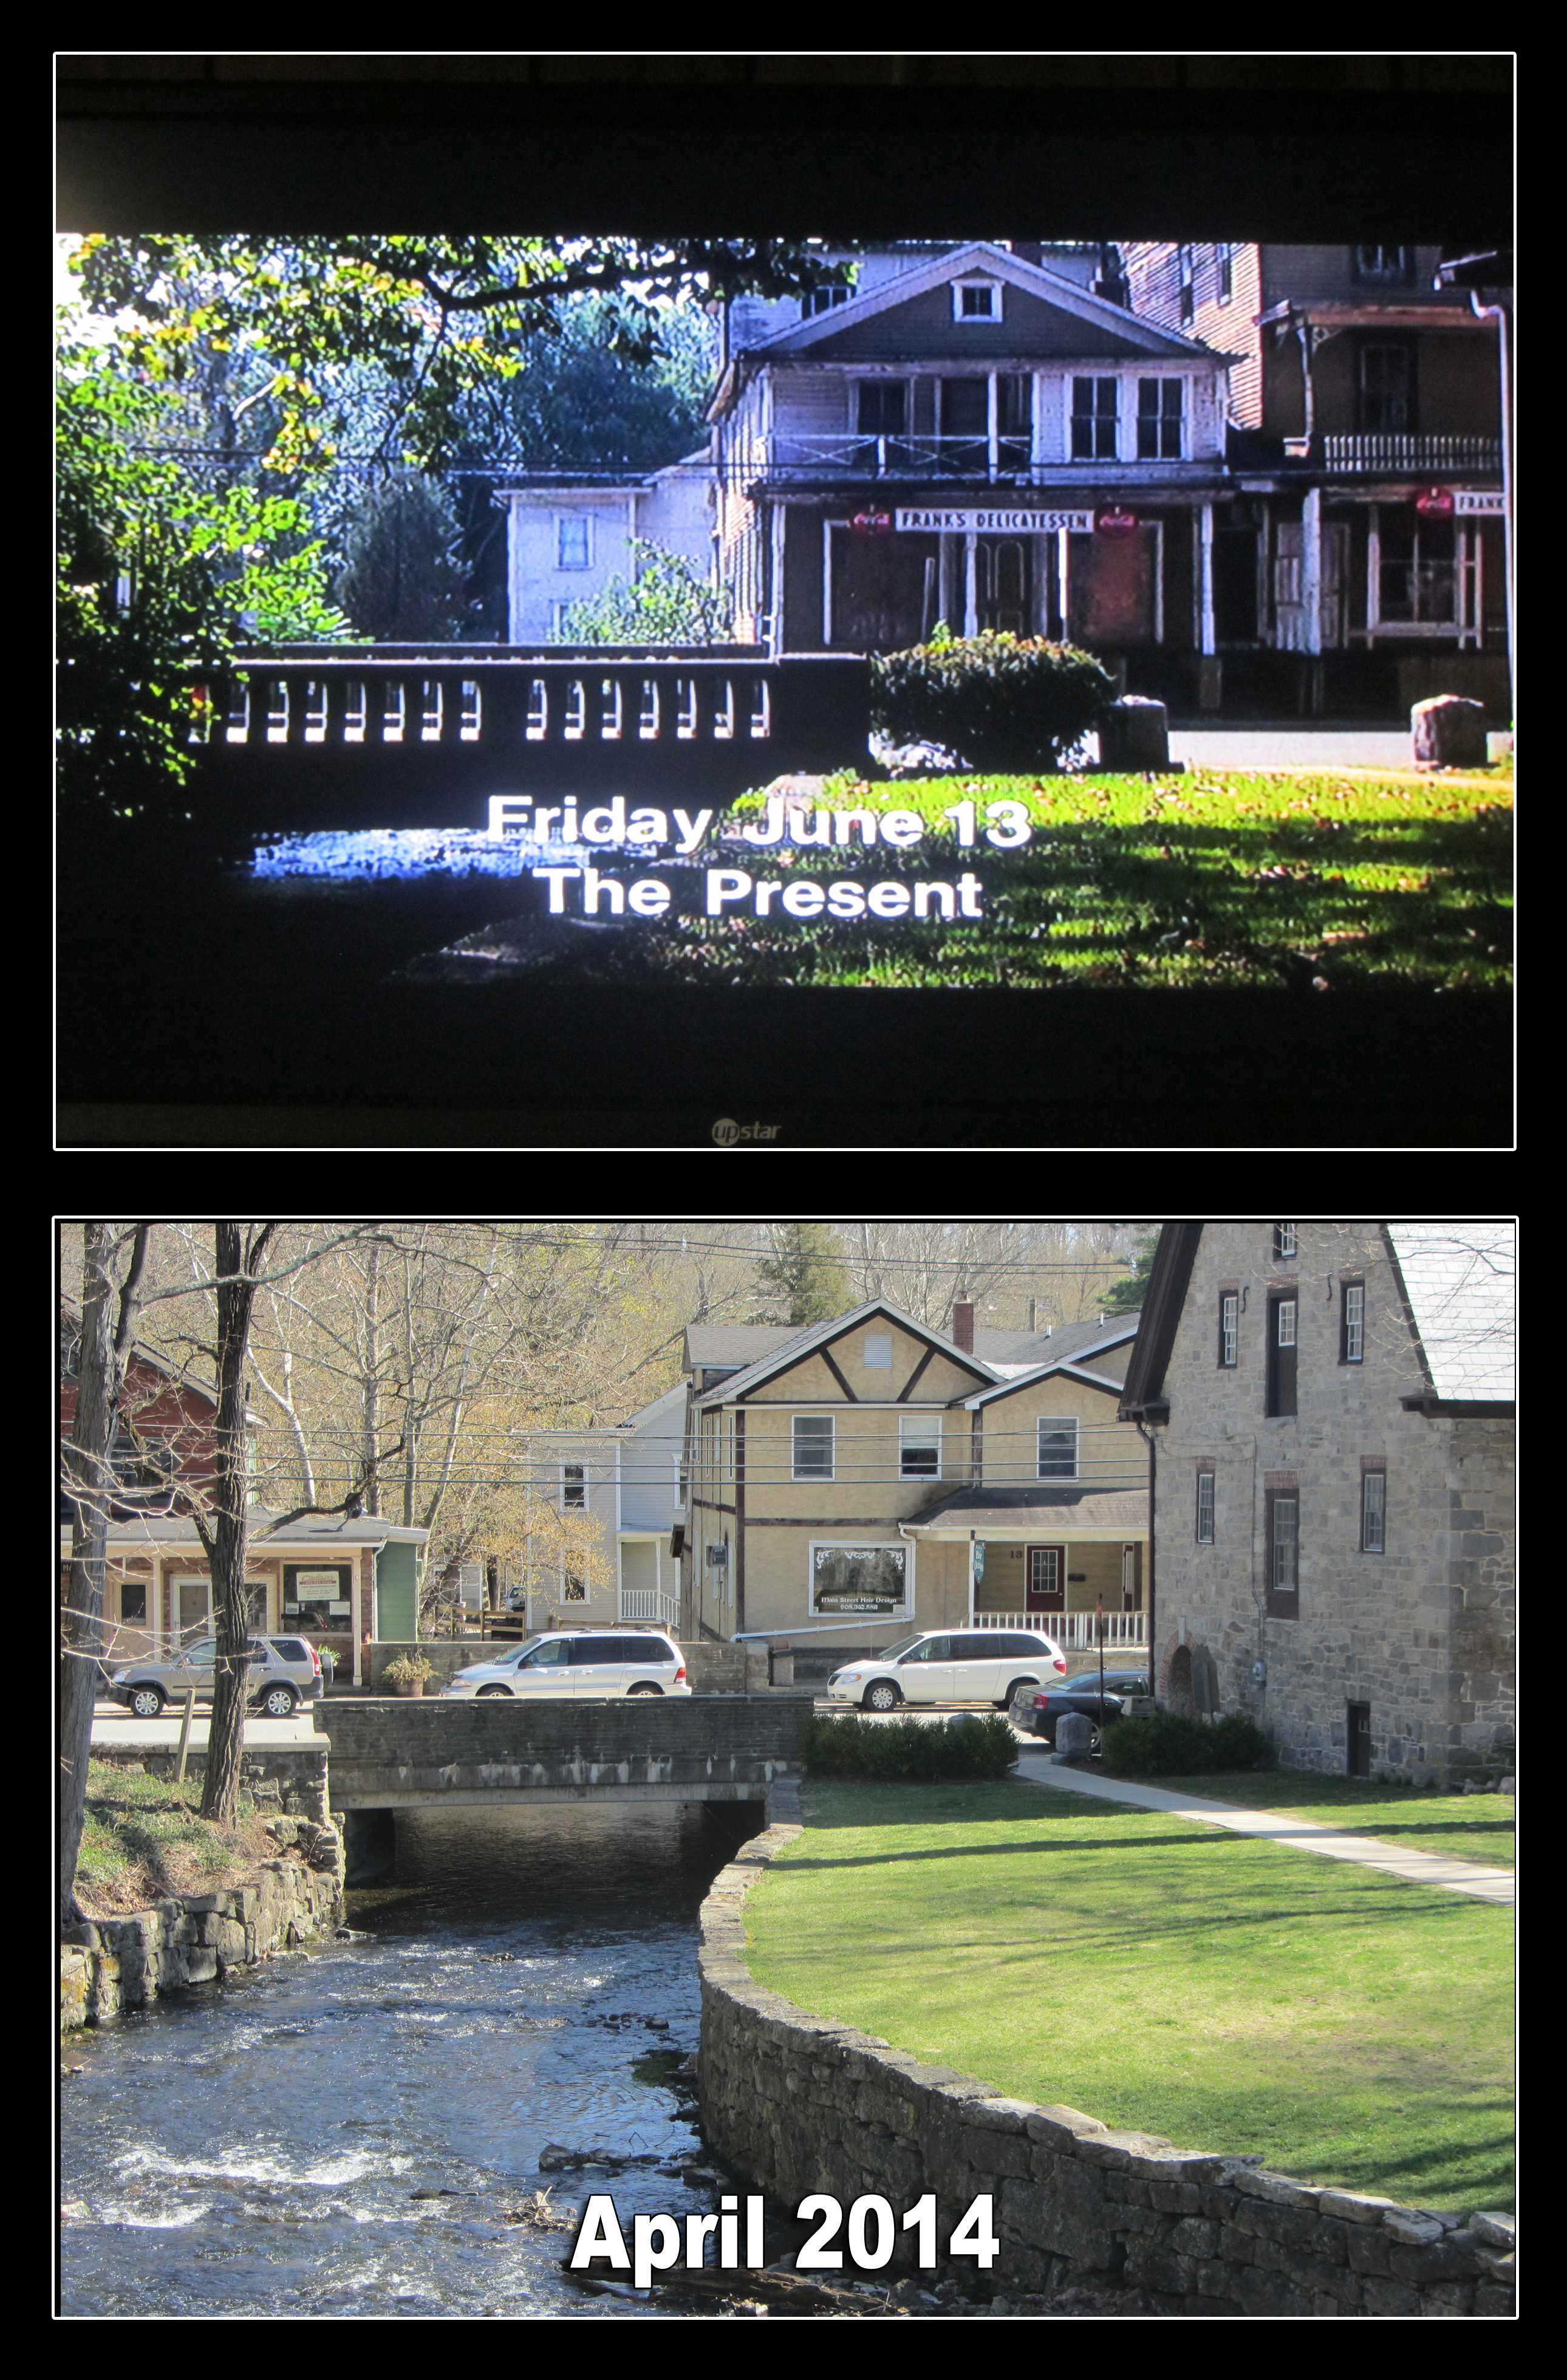 Filming In Progress The Most Beautiful Actress In The World: 'Friday The 13th' Filming Locations